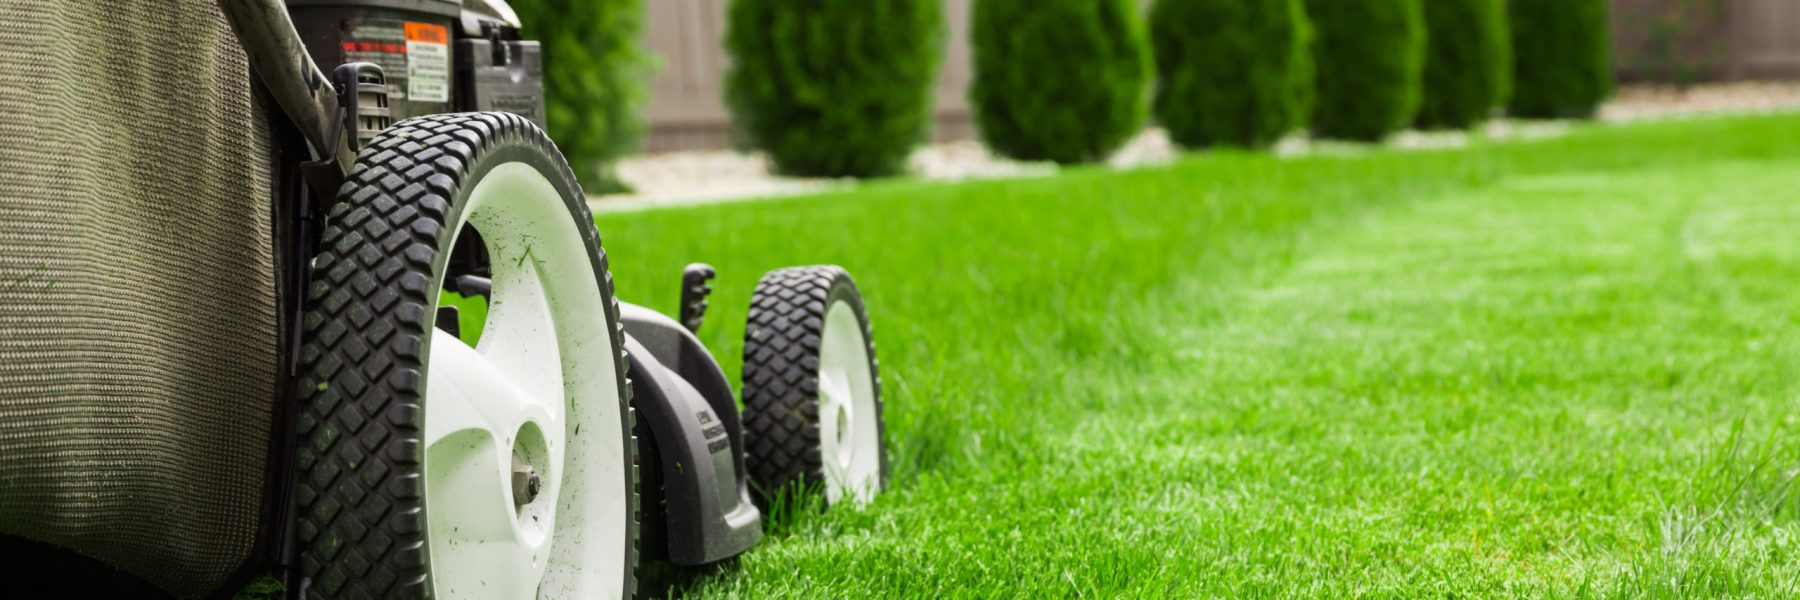 Lawn Pros Continue Business as Usual Among COVID-19 Pandemic